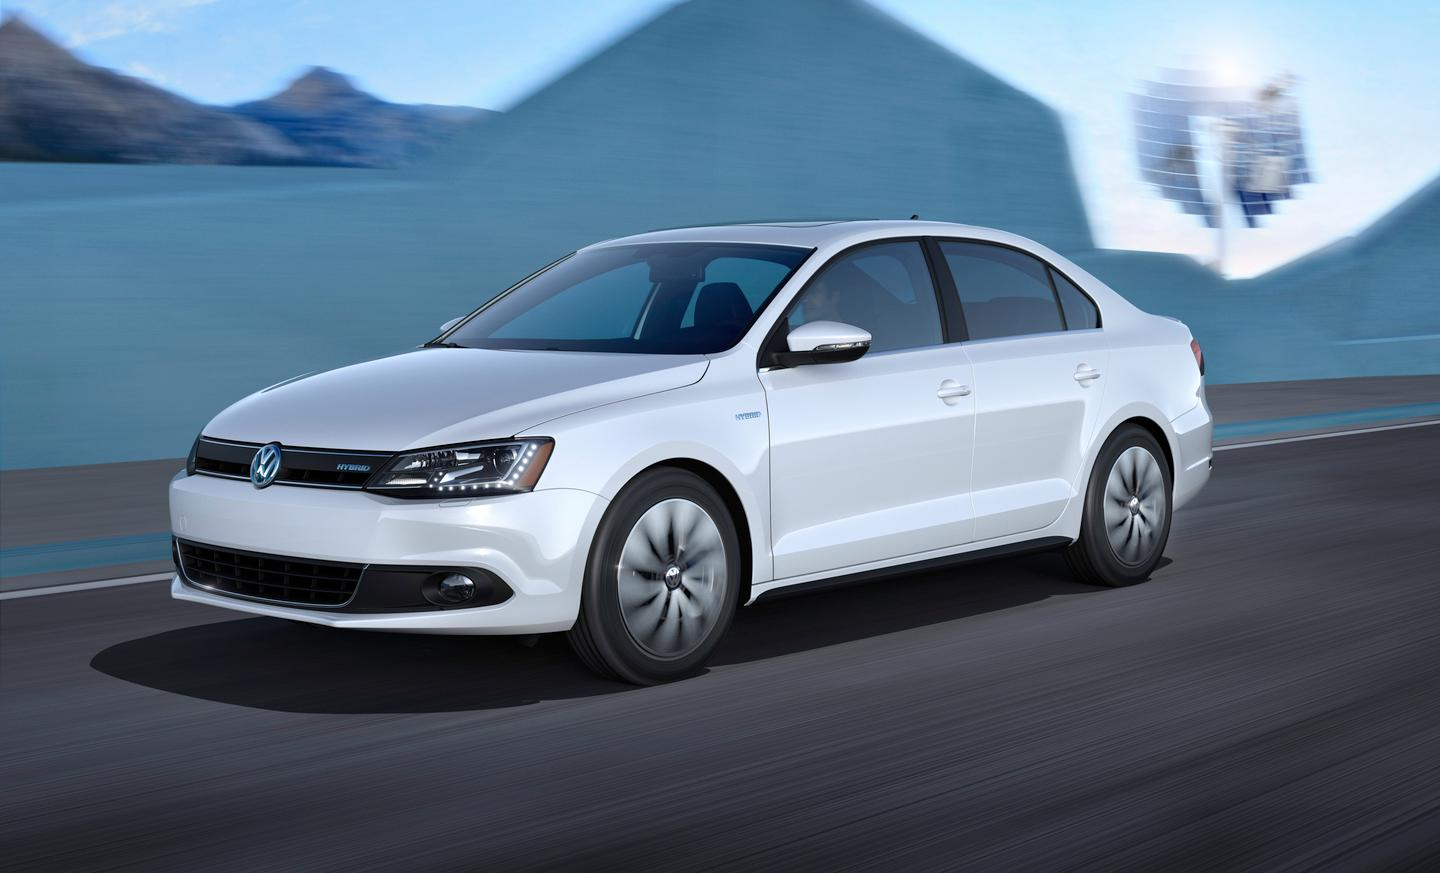 The Jetta Hybrid features a 1.4-liter turbocharged, direct-injection four-cylinder TSI gasoline powerplant that develops 150 horsepower